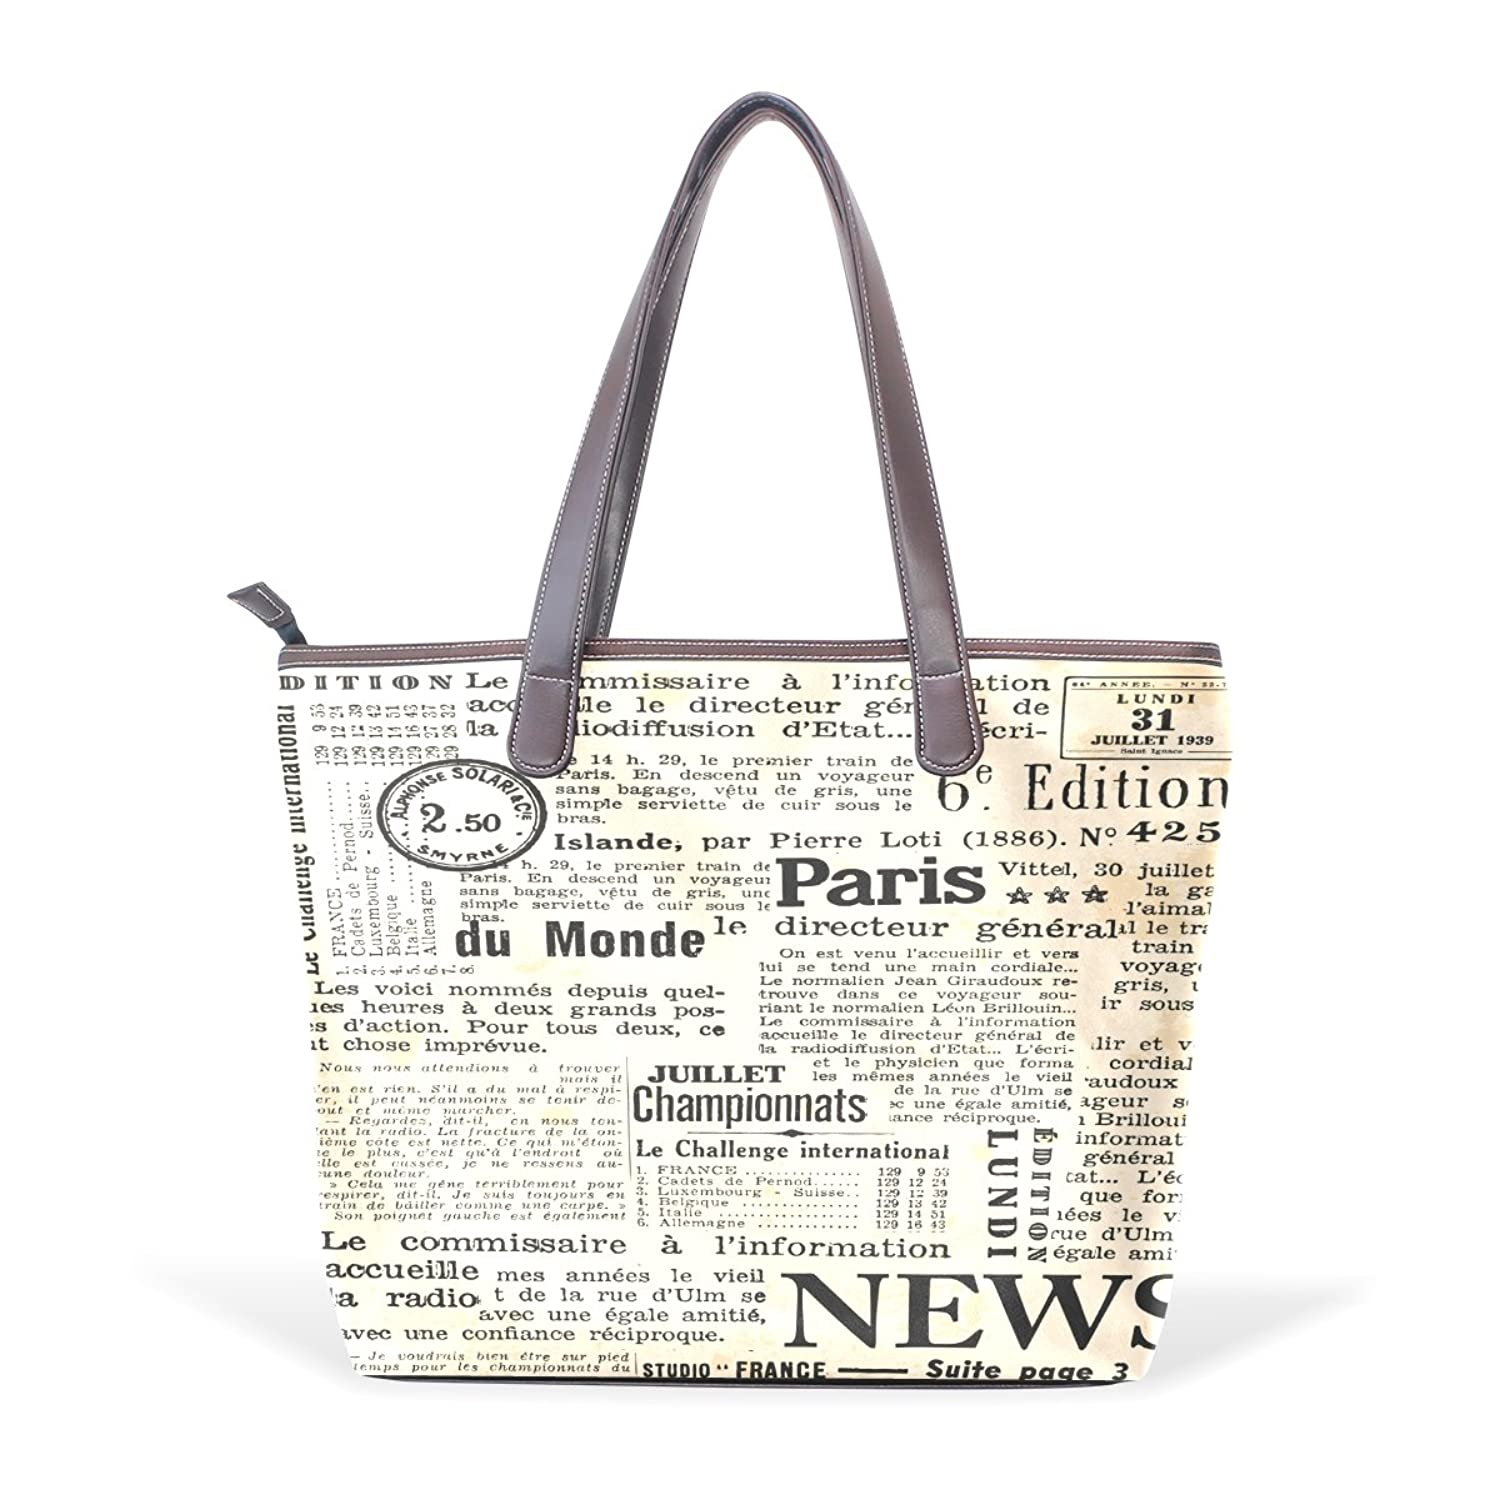 BYouLockX Yellowing Newspaper Pattern Leather Handbags Satchel ShoulderBag for Women